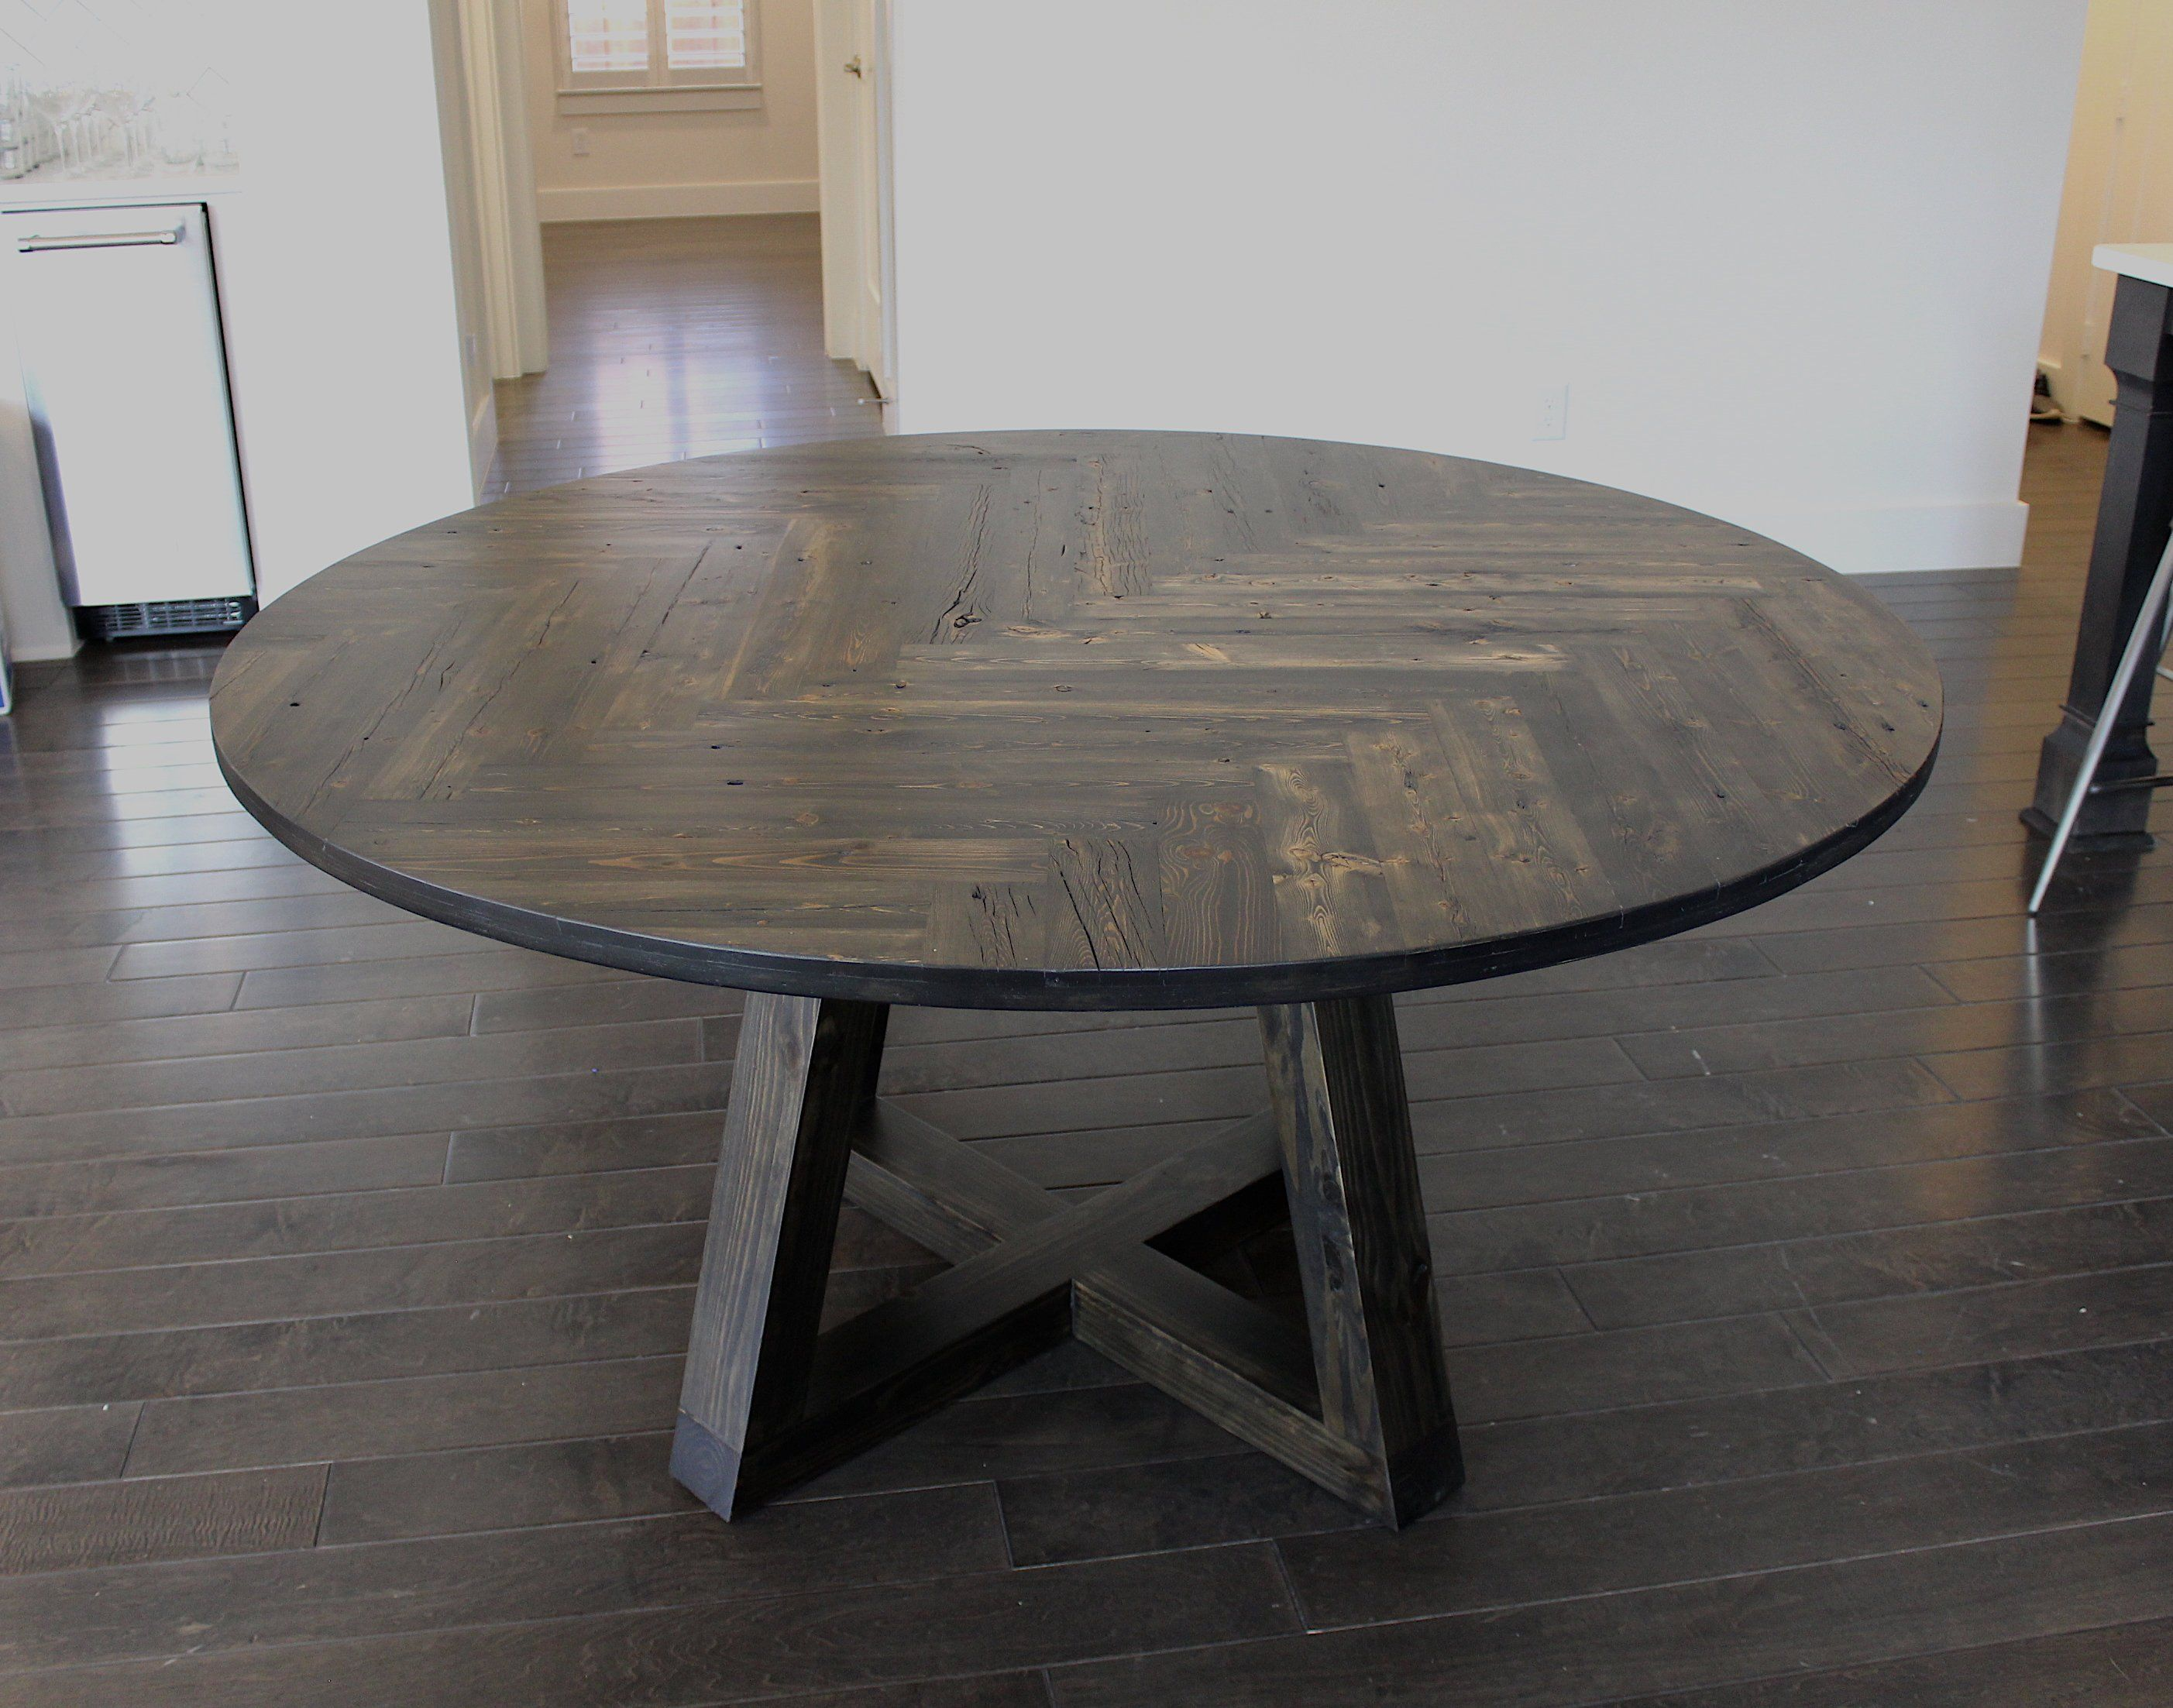 Reclaimed Circle Herringbone Dining Table Double Herringbone 5ft Diameter Circle Table Dark Walnut Circular Dining Table Round Wooden Dining Table Dining Table